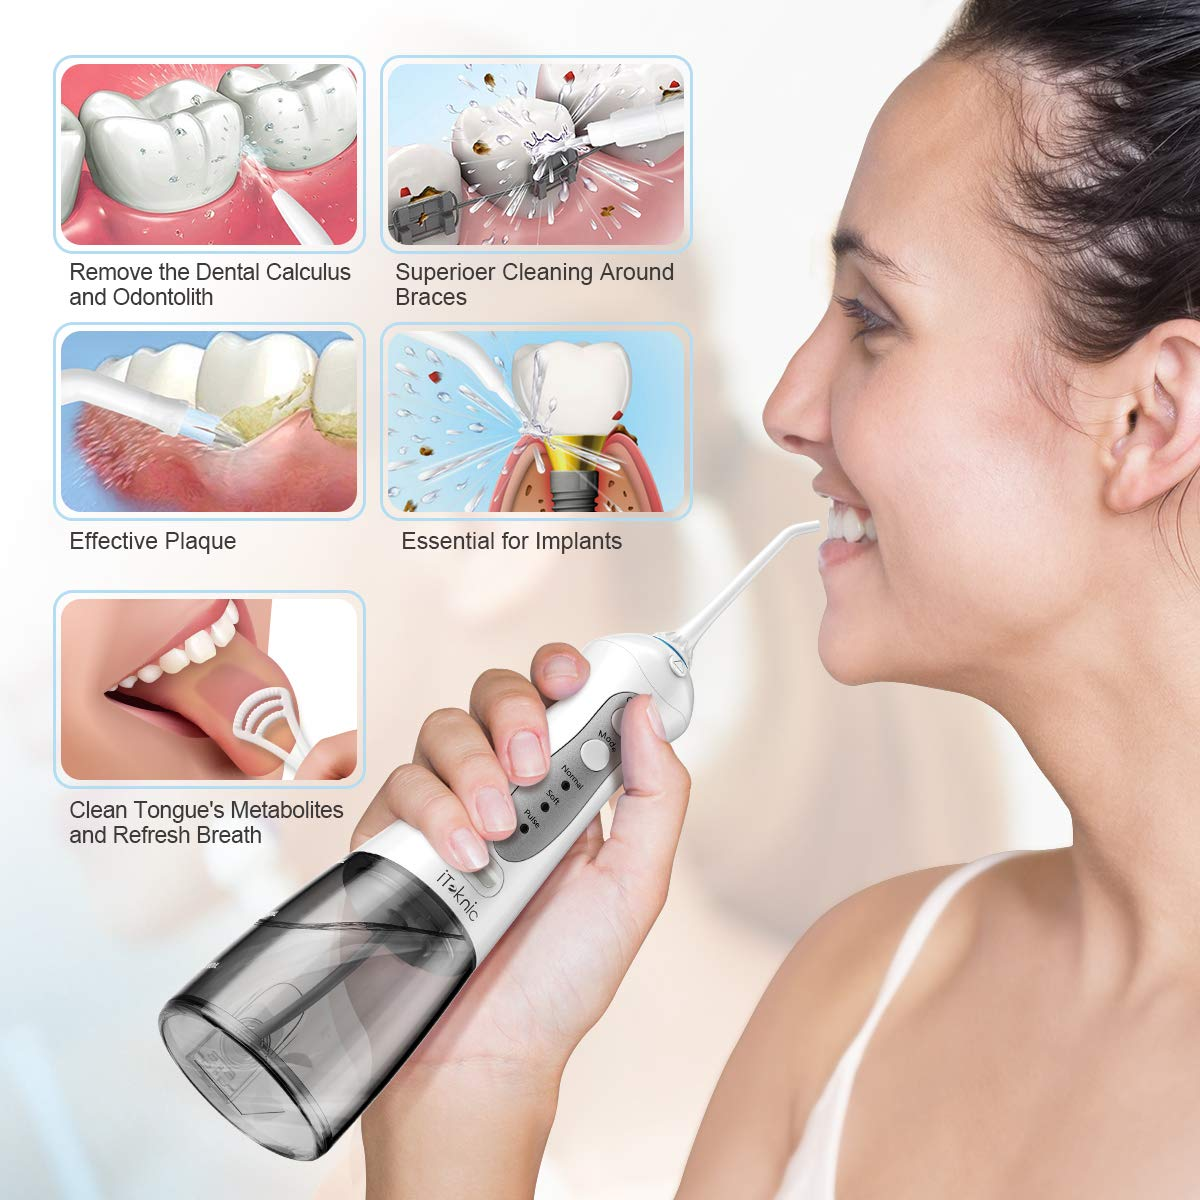 Water Flosser Teeth Cleaner, iTeknic Professional Cordless Dental Oral Irrigator 300ML Portable and Rechargeable IPX7 Waterproof 3 Modes Water Flossing with 5 Jet Tips for Home and Travel- Grey